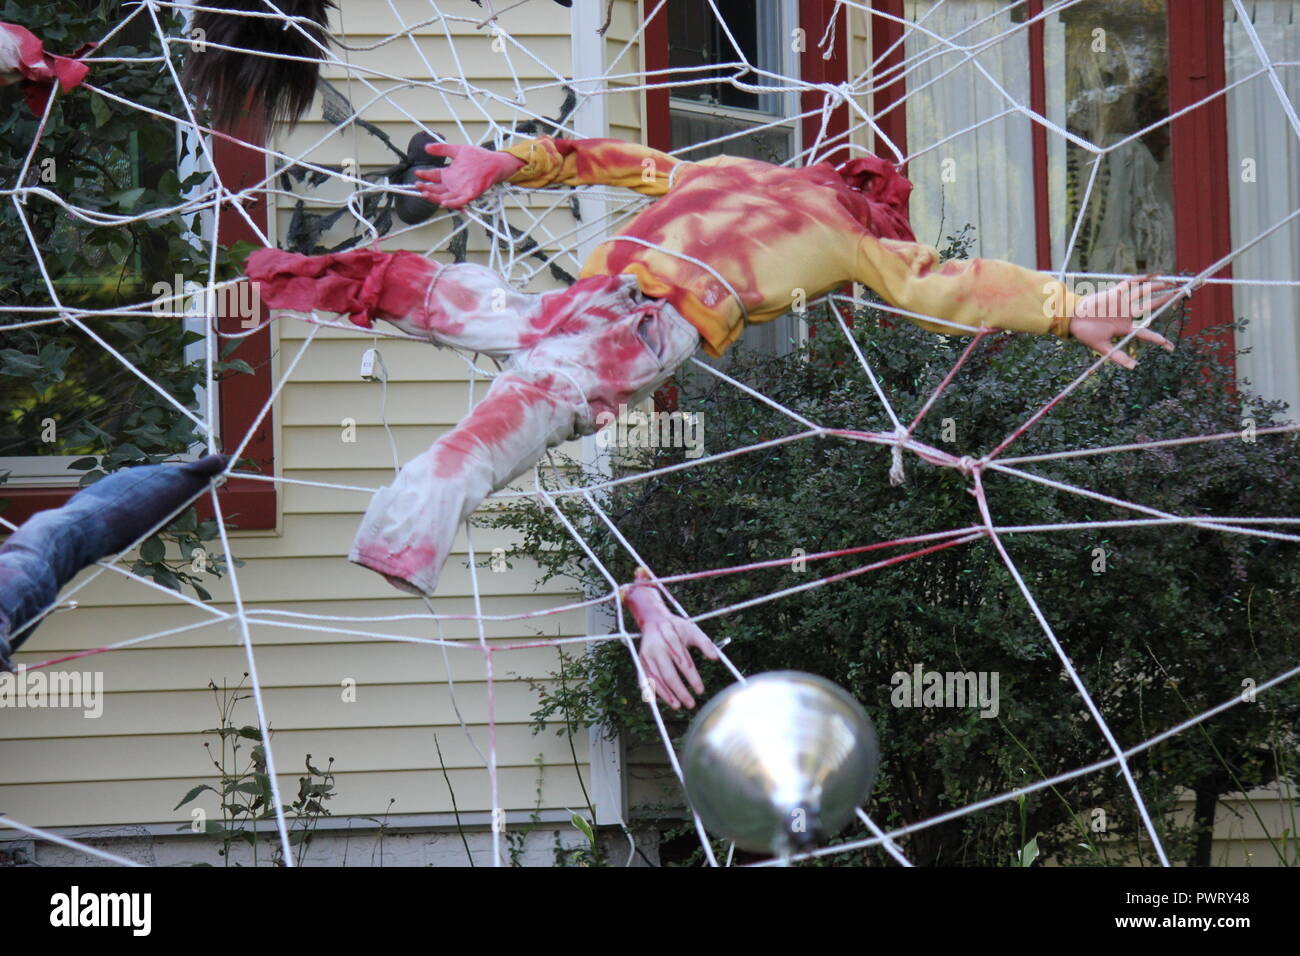 Nightmare Spiders High Resolution Stock graphy and